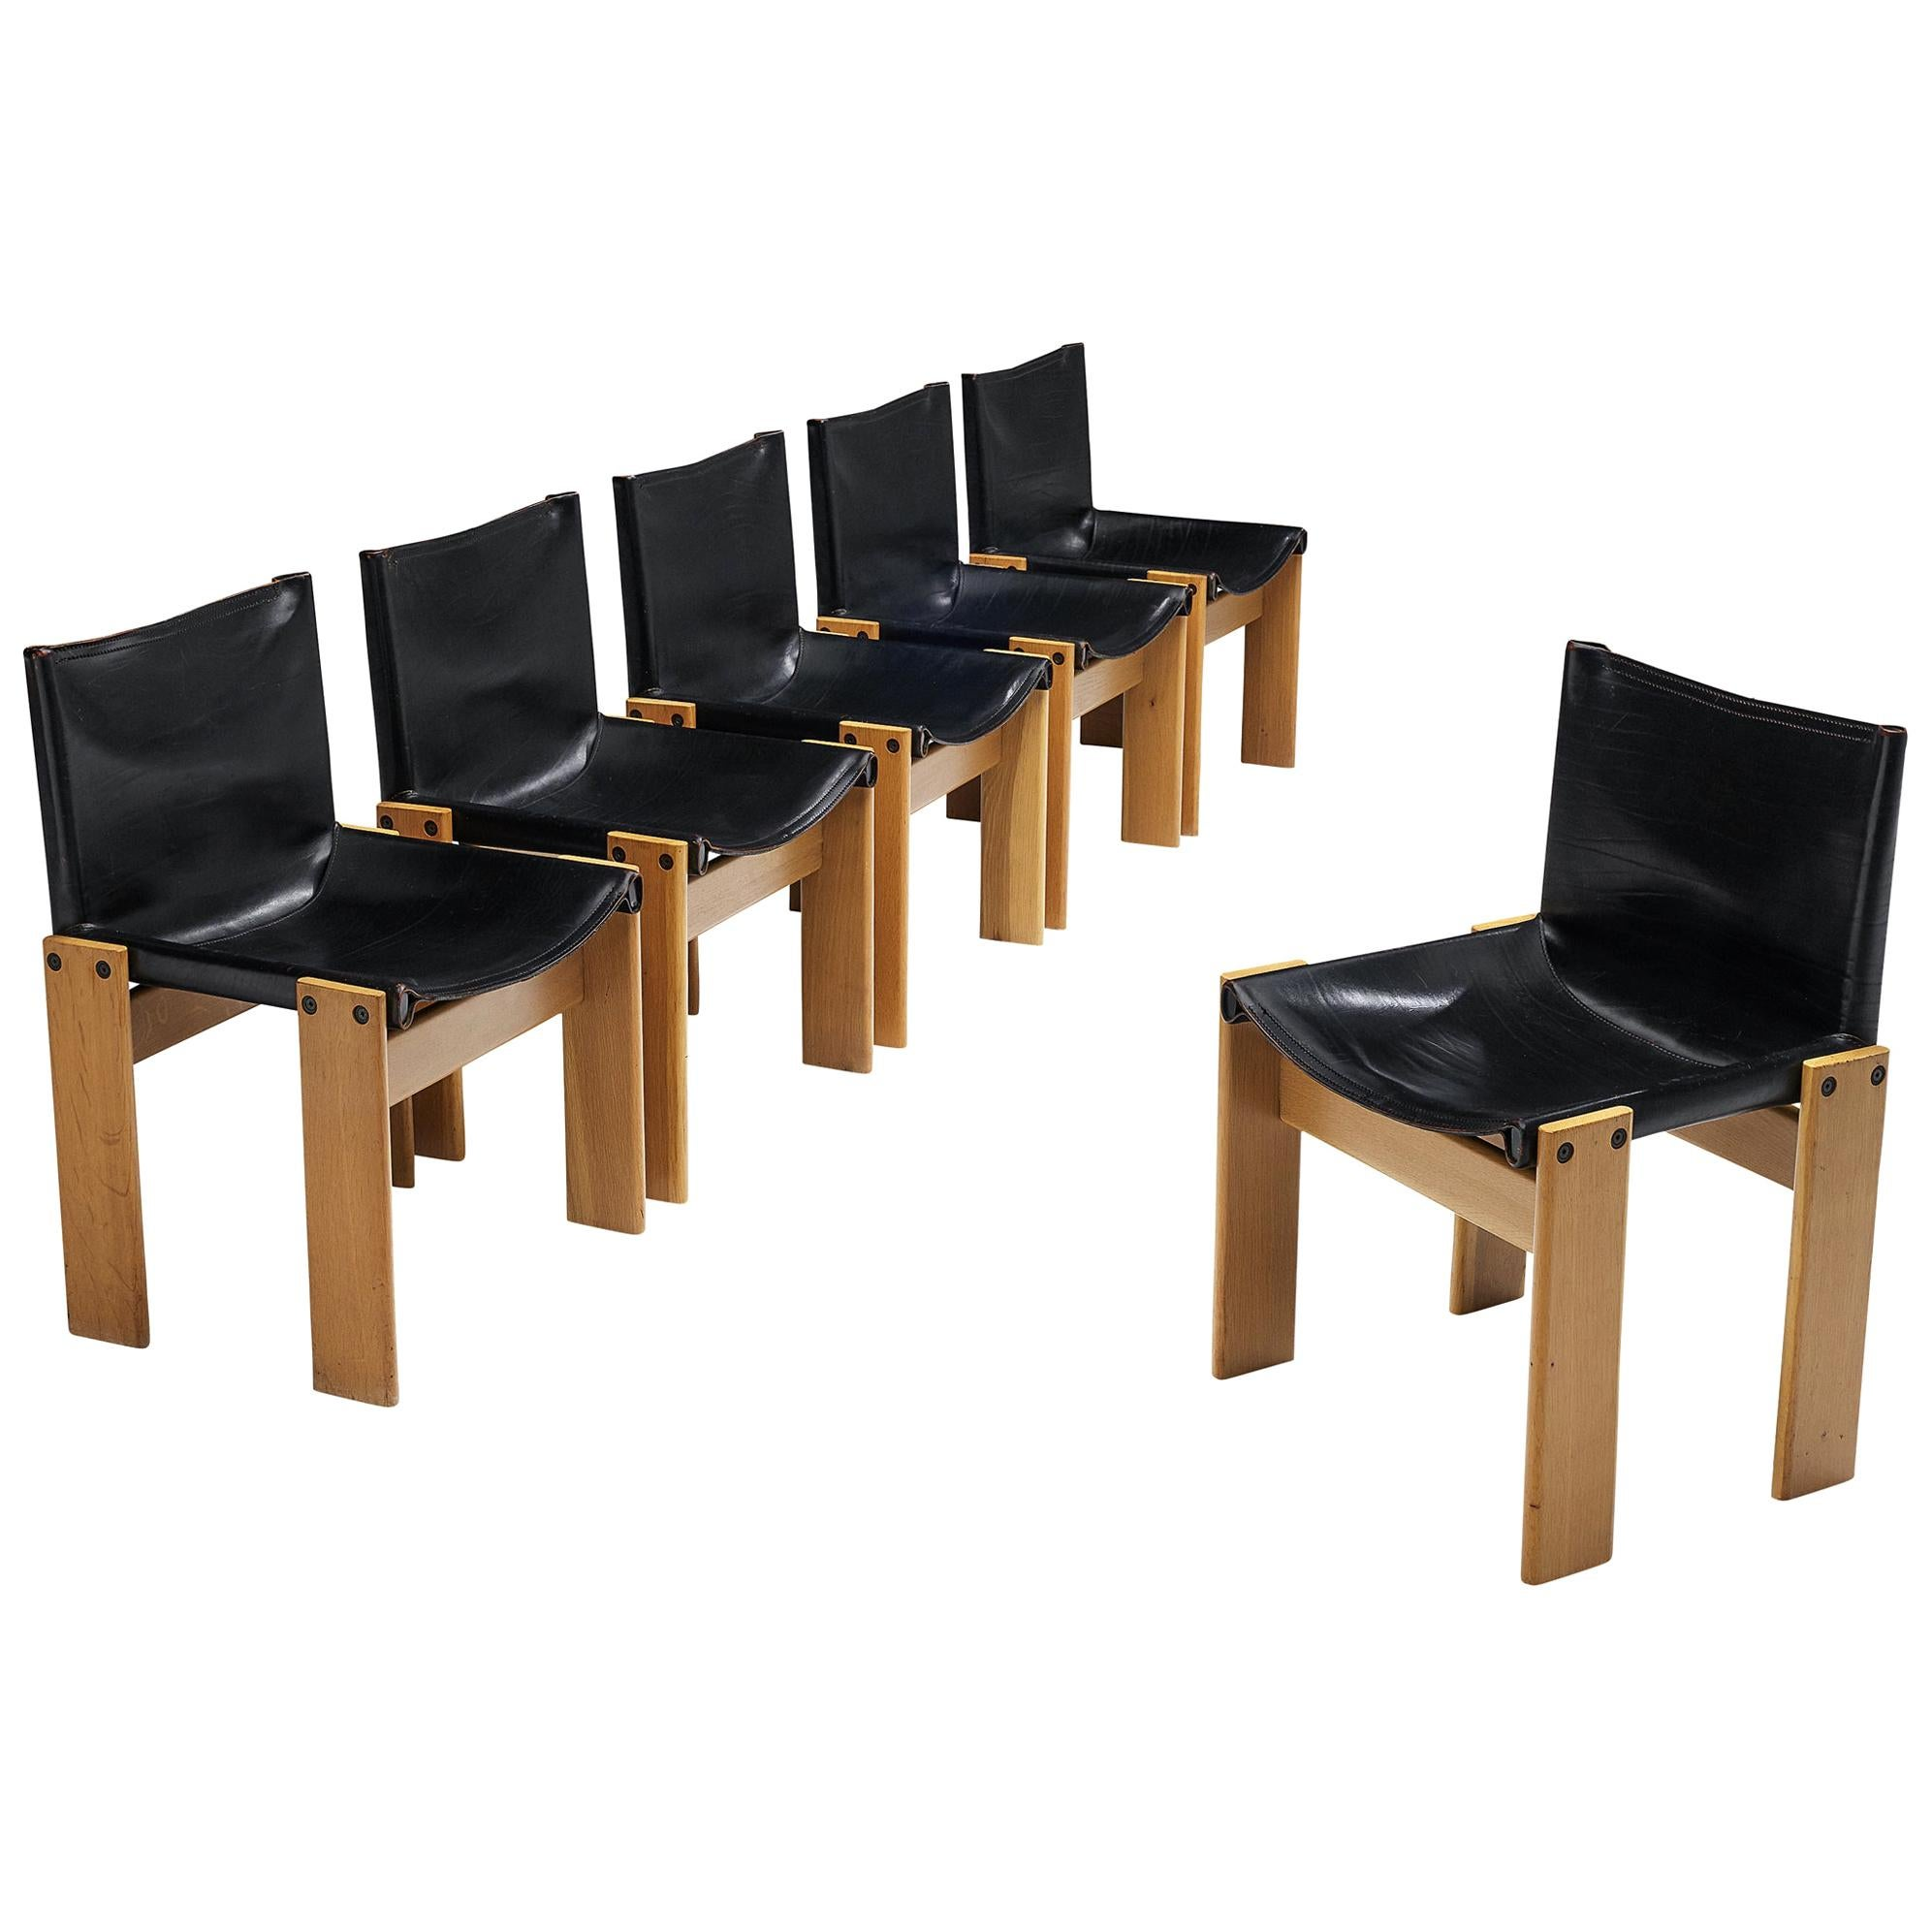 Tobia & Afra Scarpa for Molteni Six 'Monk' Chairs in Black Leather